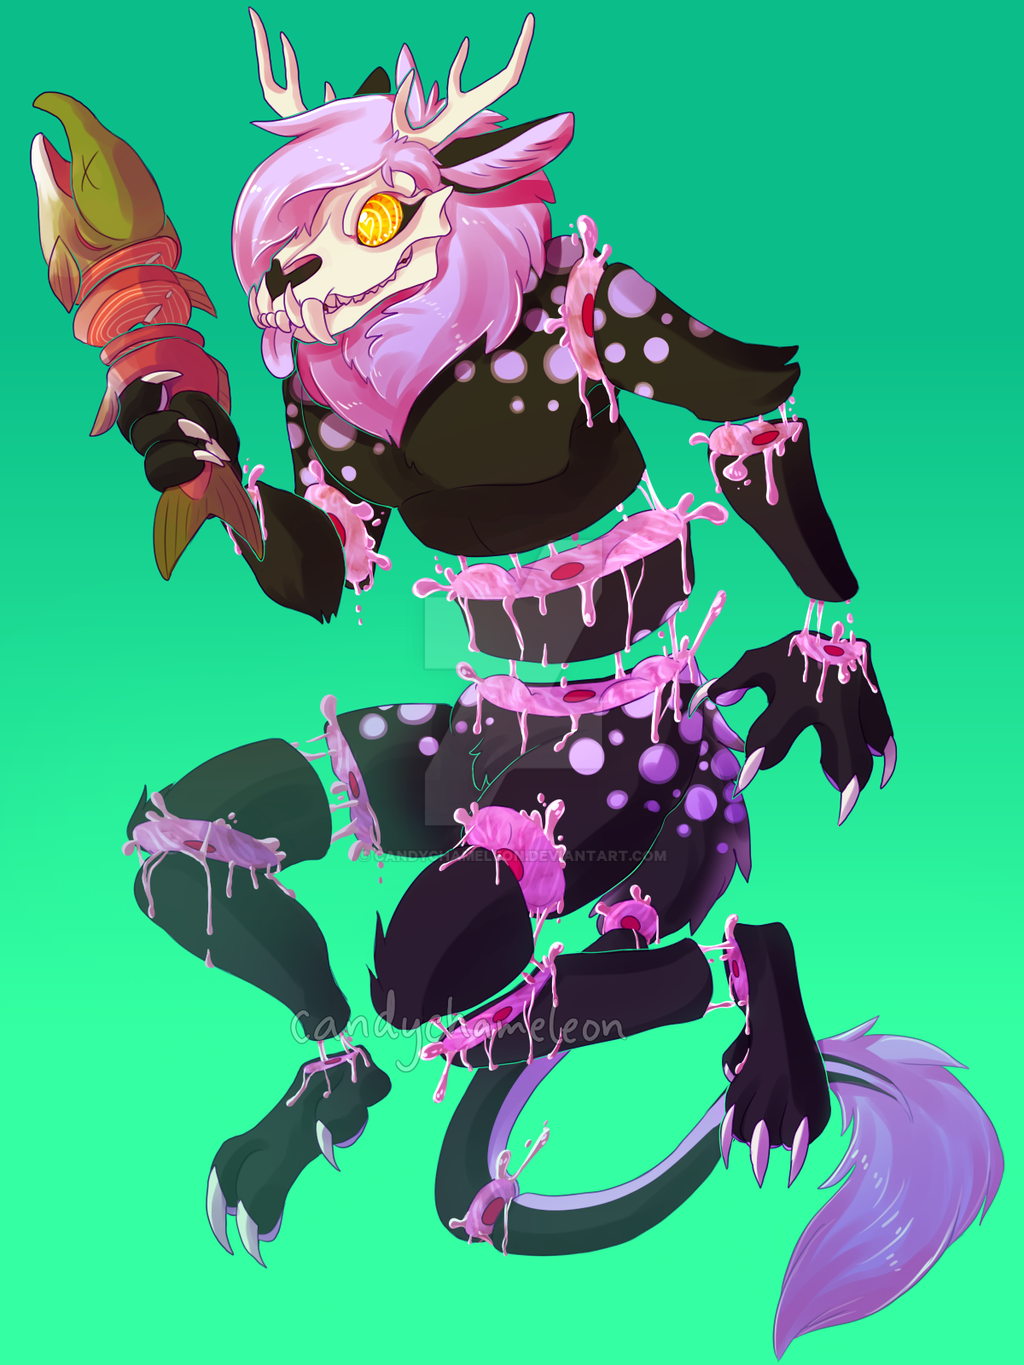 carnivore_candy_gore_by_candychameleon-d9yt1xn.png